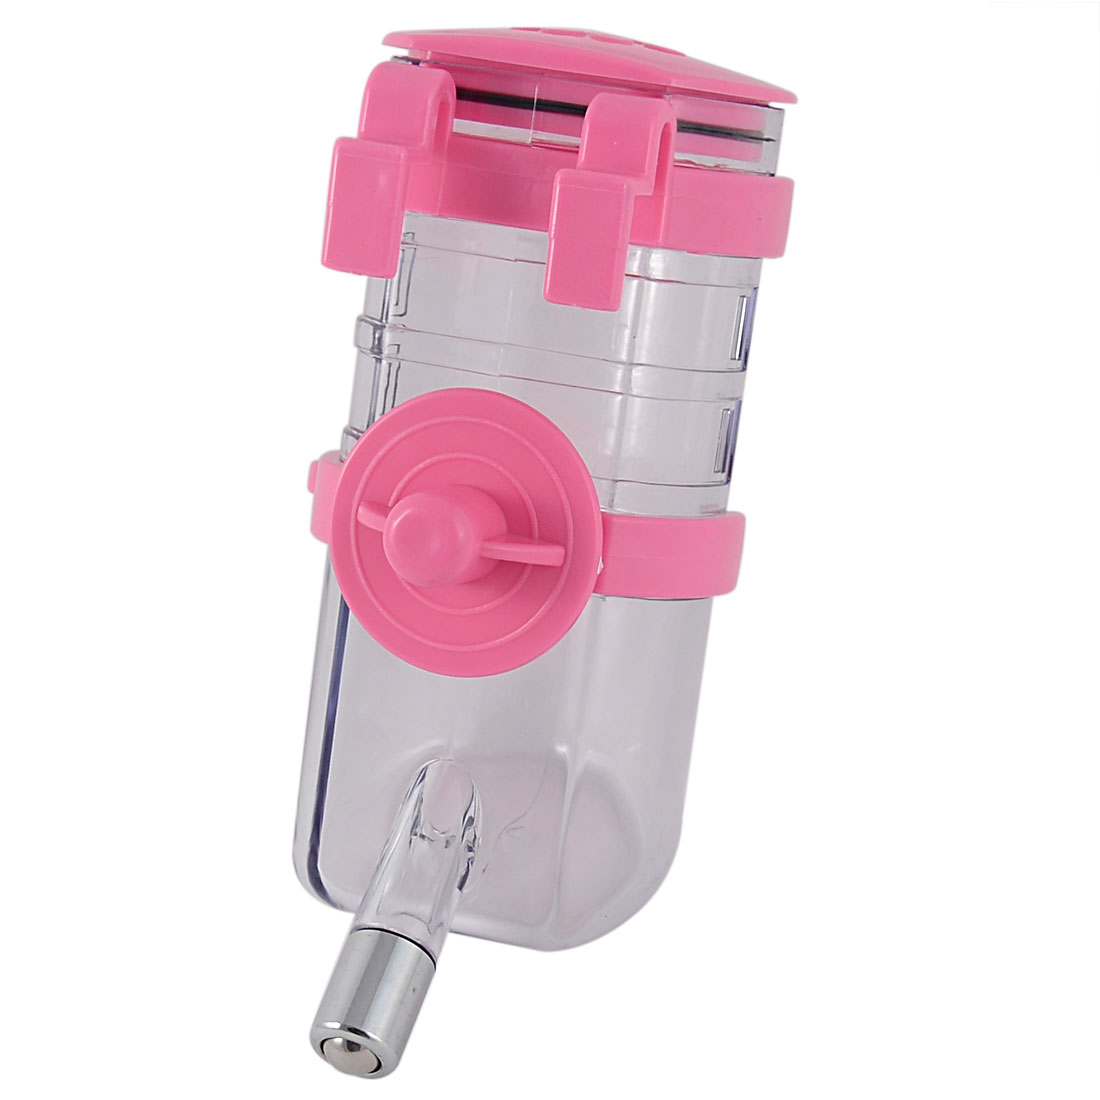 Doggy Cat Dog Plastic Hanging Bottle Holder Pet Water Drinking Feeder Pink Clear 350ml